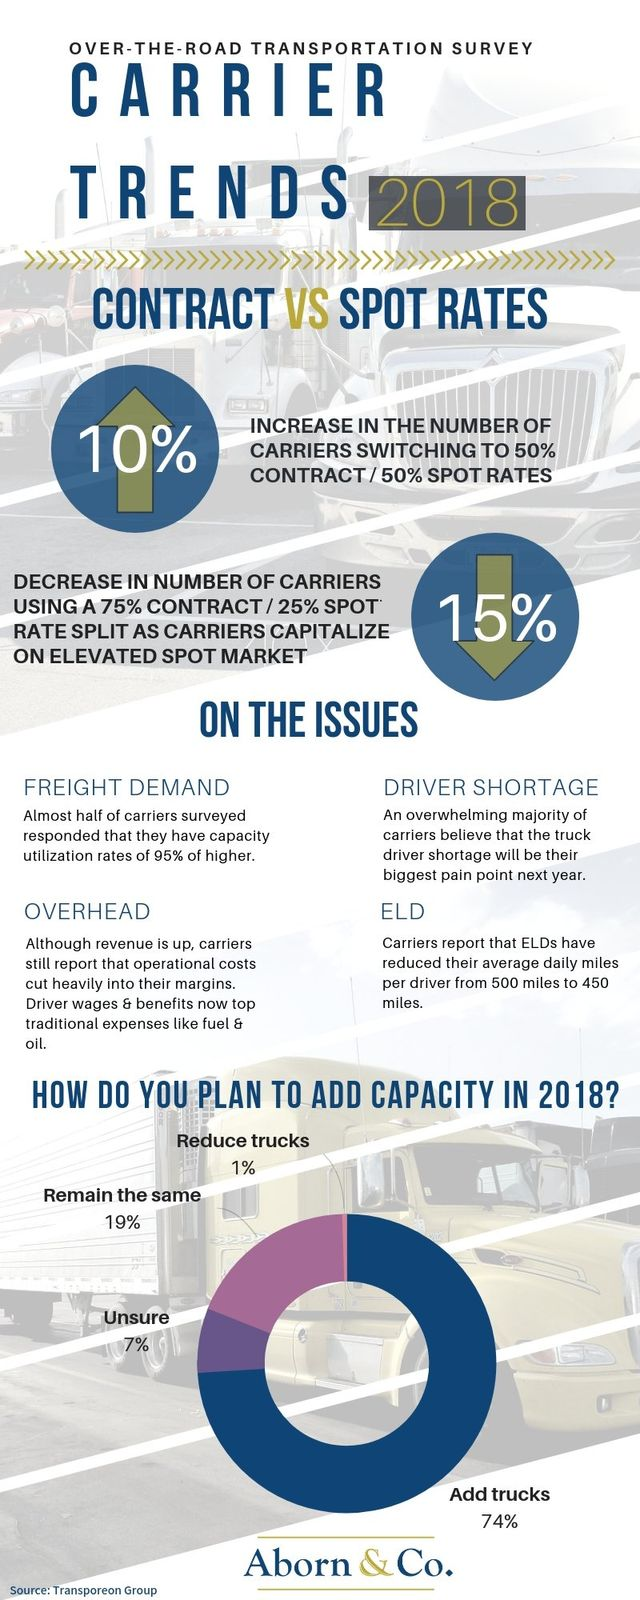 Carrier Trends 2018 Infographic